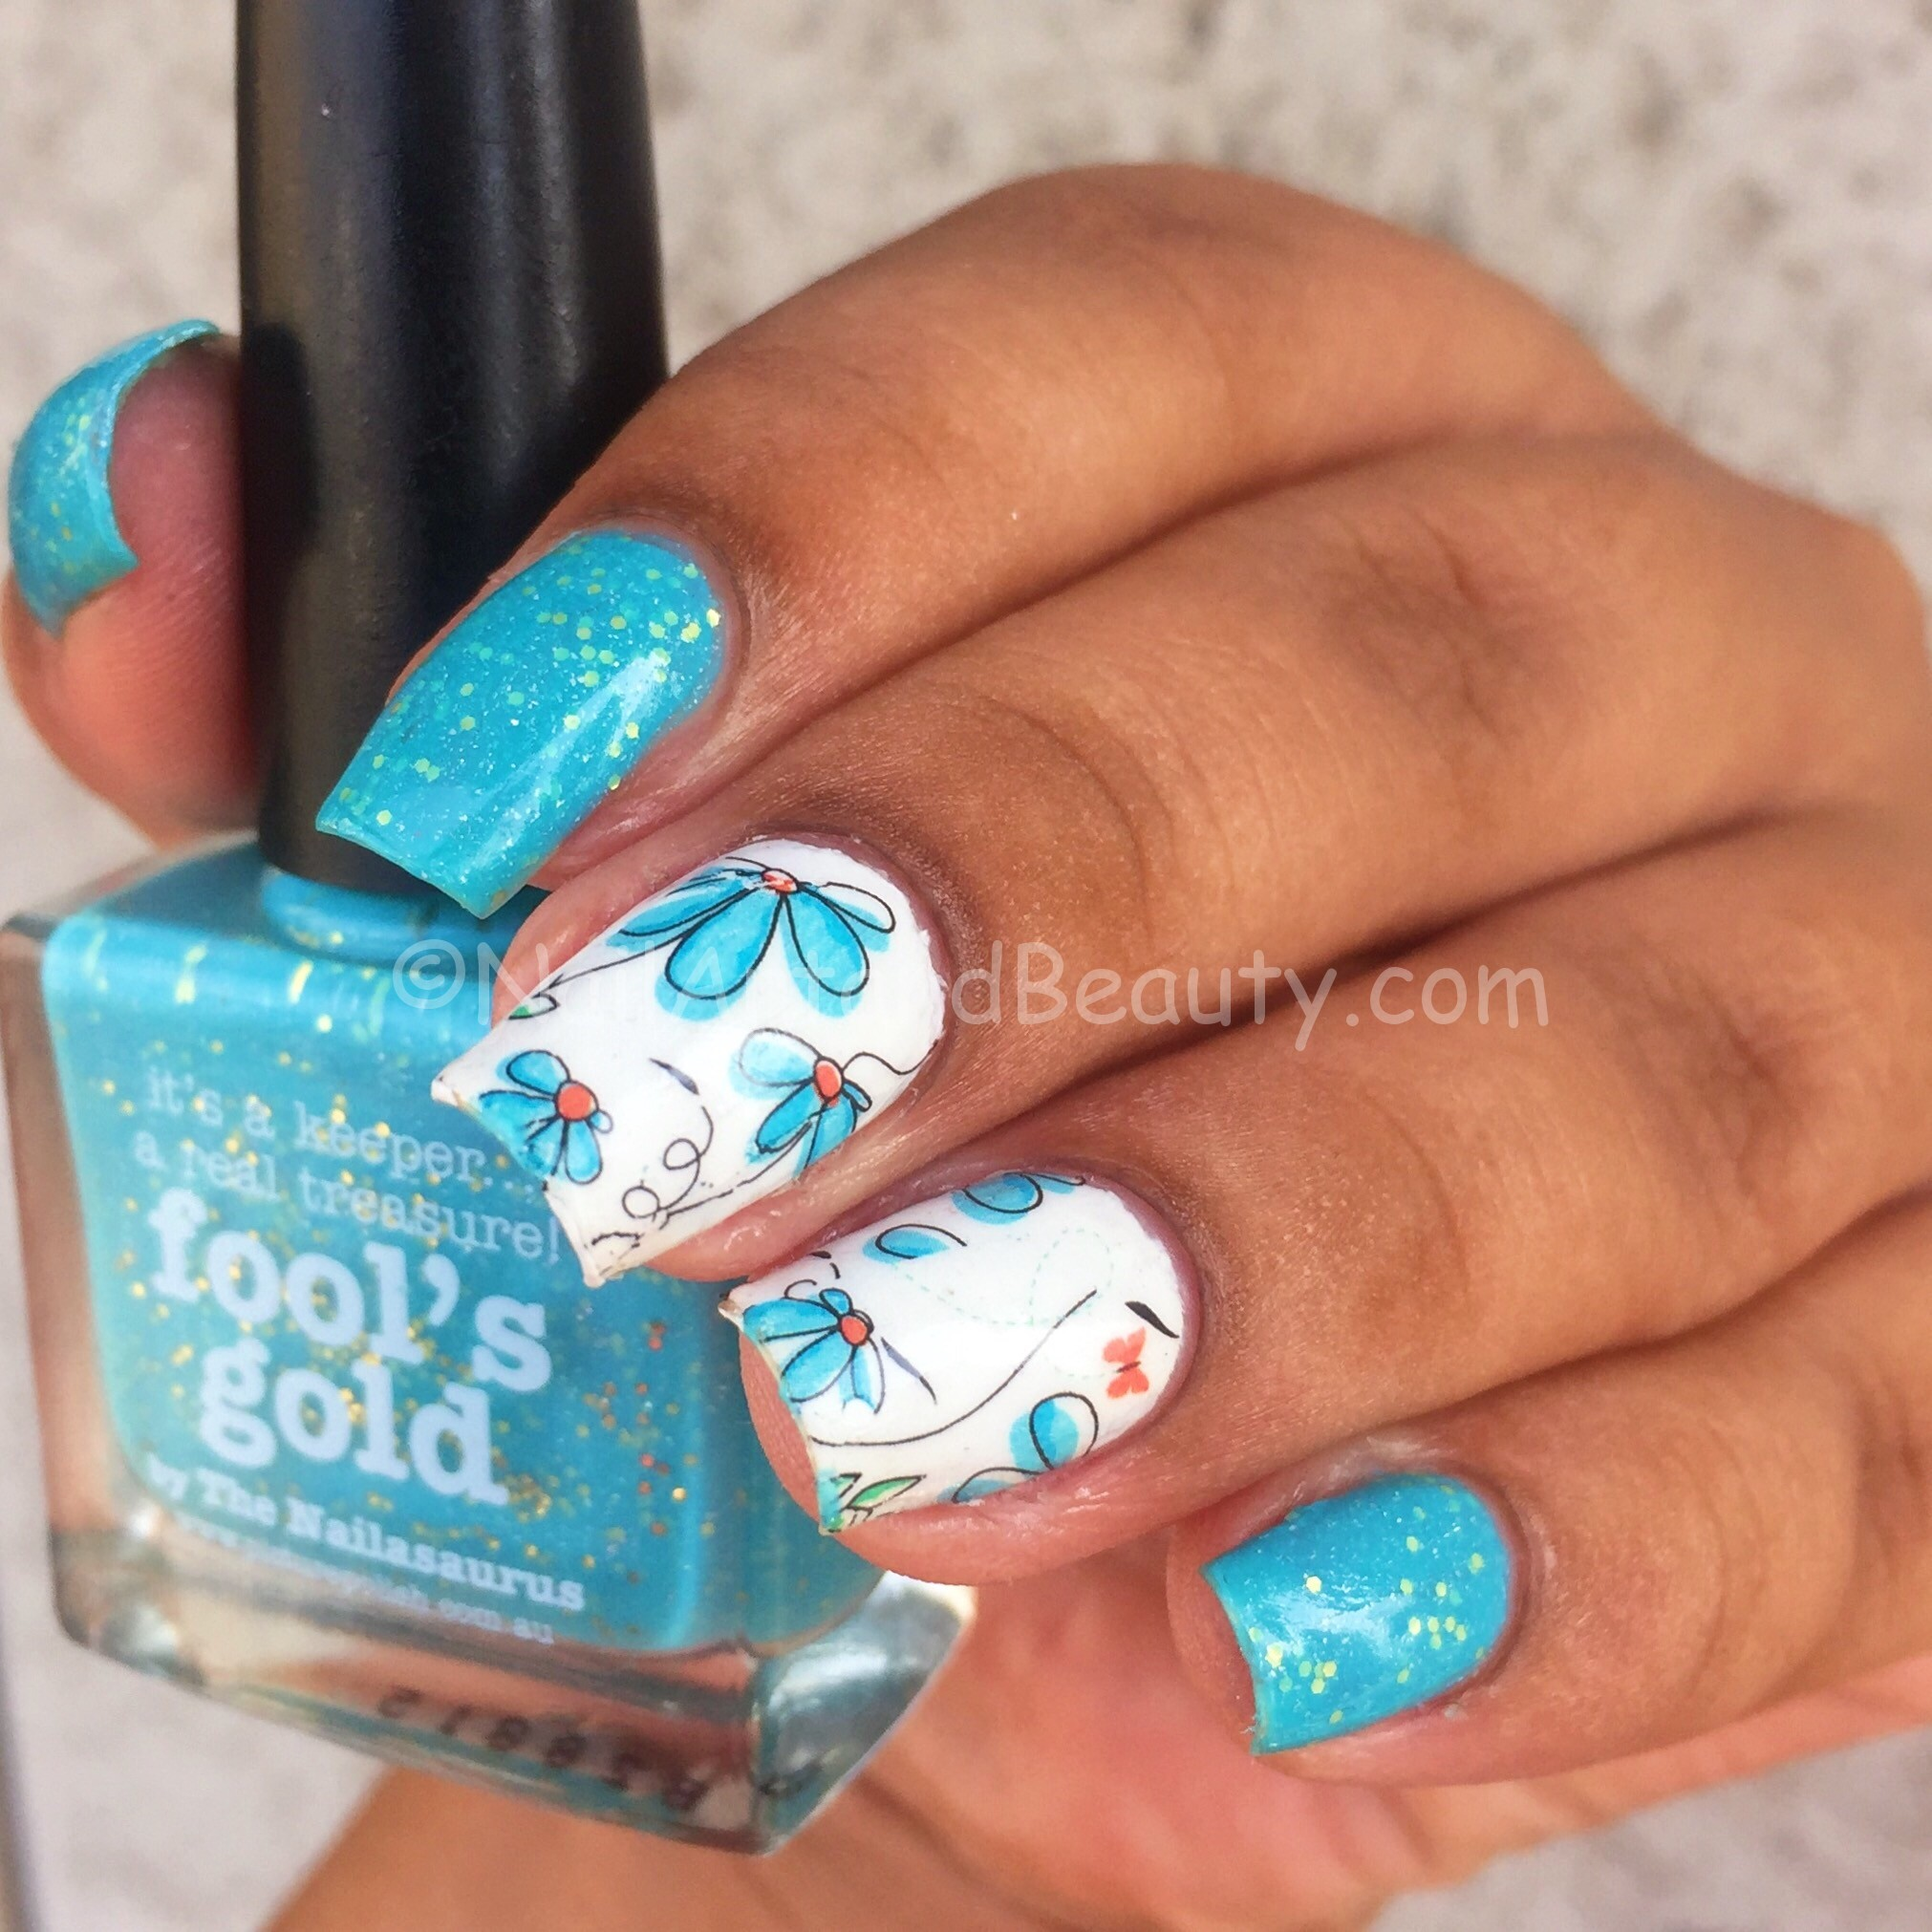 Water Decal Mani with PP Fools Gold